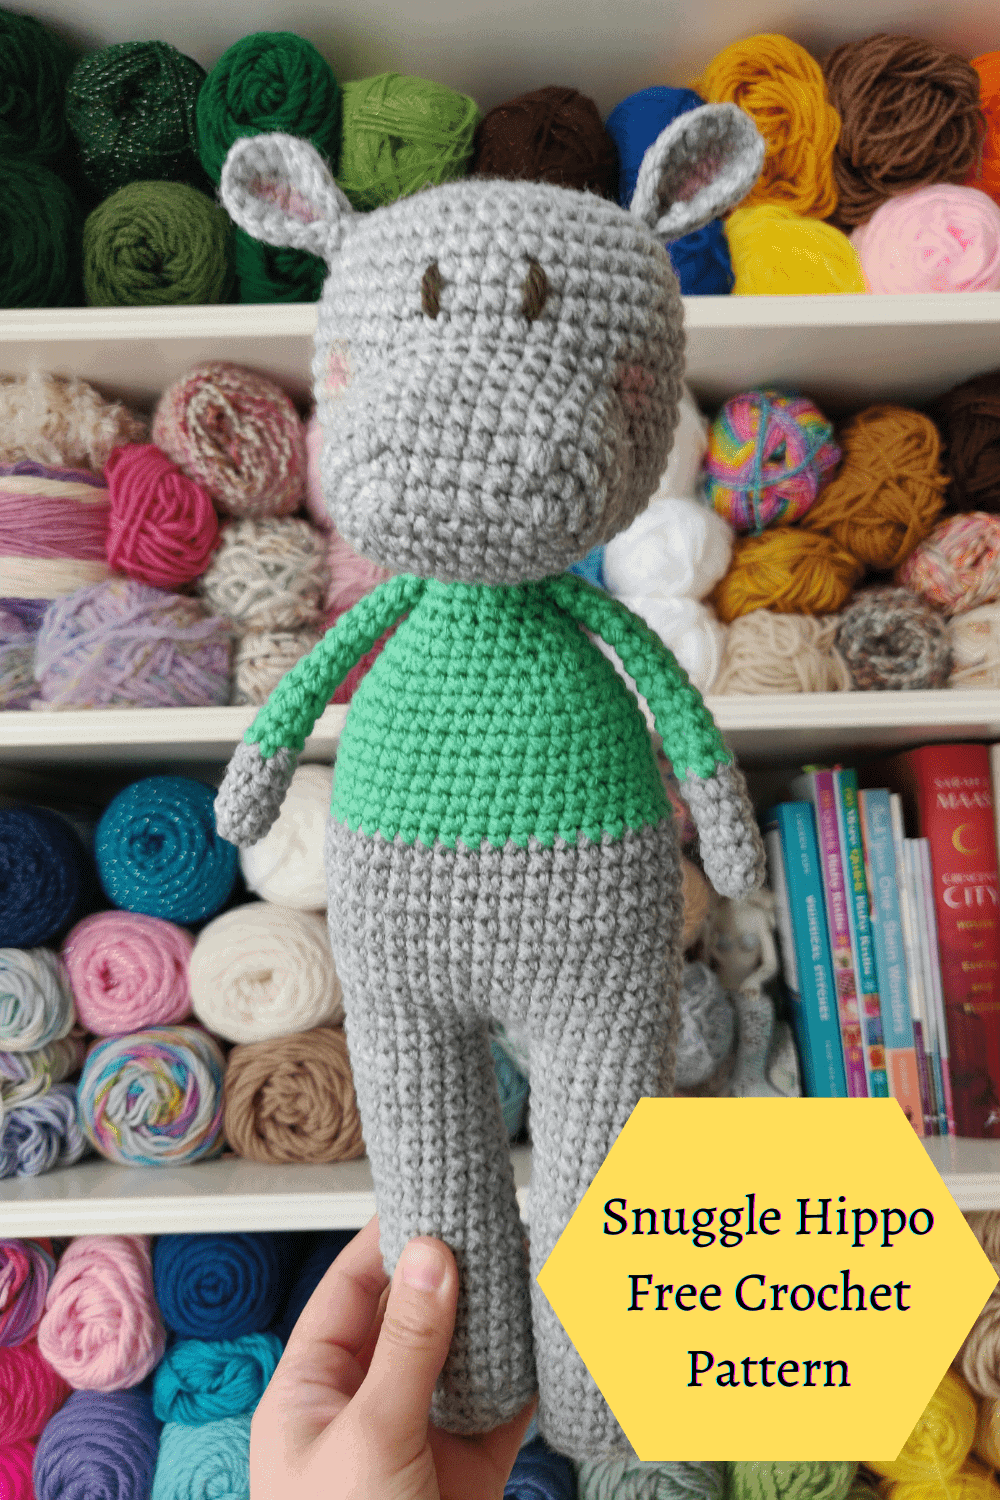 Gray crochet hippo with a green long sleeve shirt. Yarn in the background.